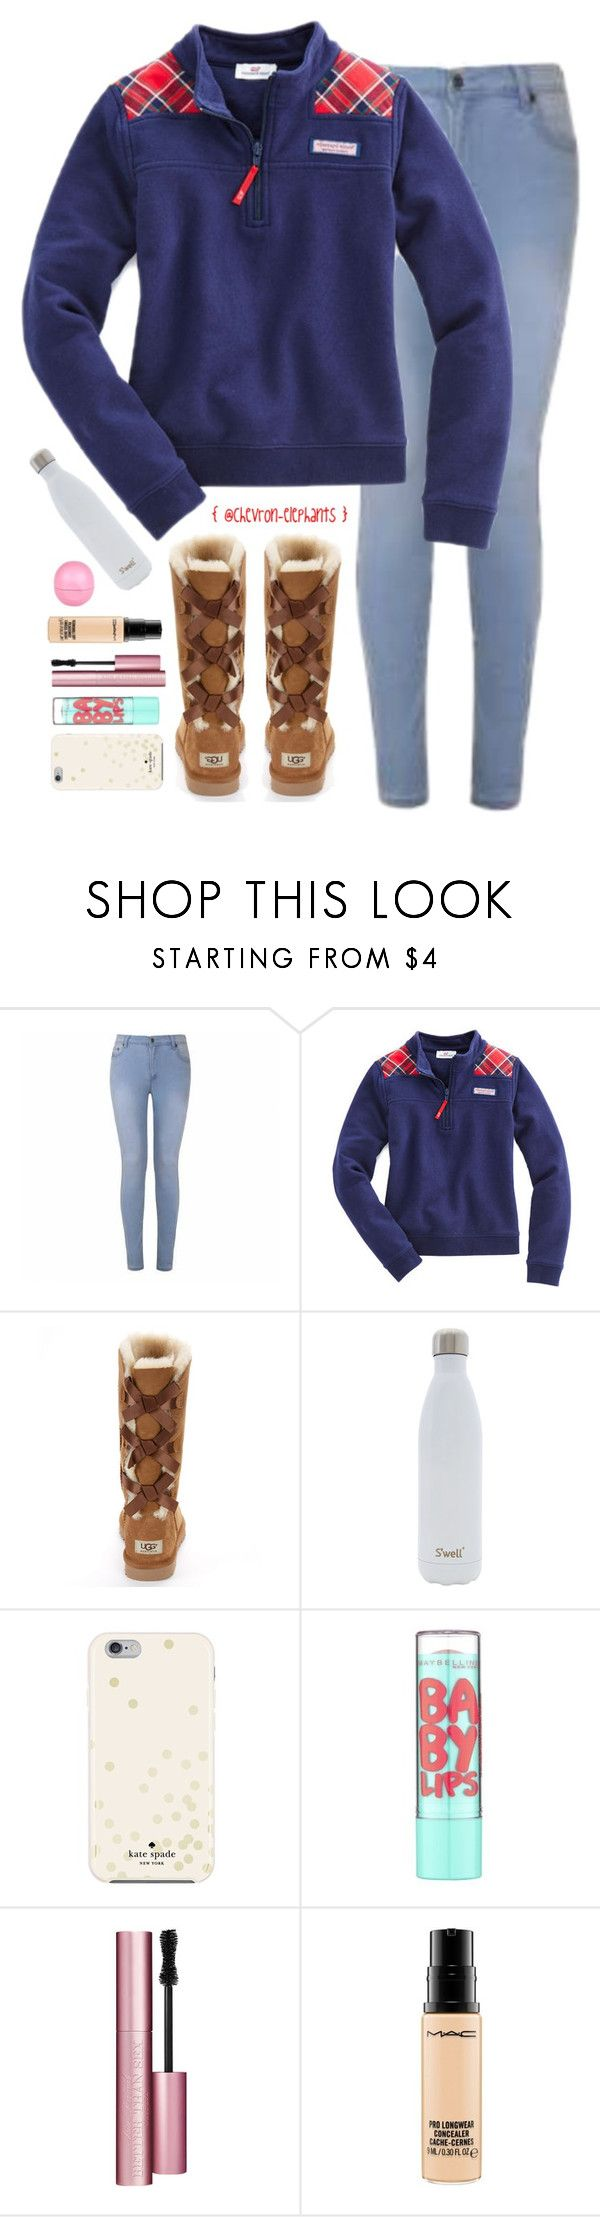 """OMG. 14 FOLLOWERS AWAY FROM 3K?!??!??!??!!!!"" by chevron-elephants ❤ liked on Polyvore featuring Ally Fashion, Vineyard Vines, UGG Australia, S'well, Kate Spade, Maybelline, Too Faced Cosmetics, MAC Cosmetics and River Island"